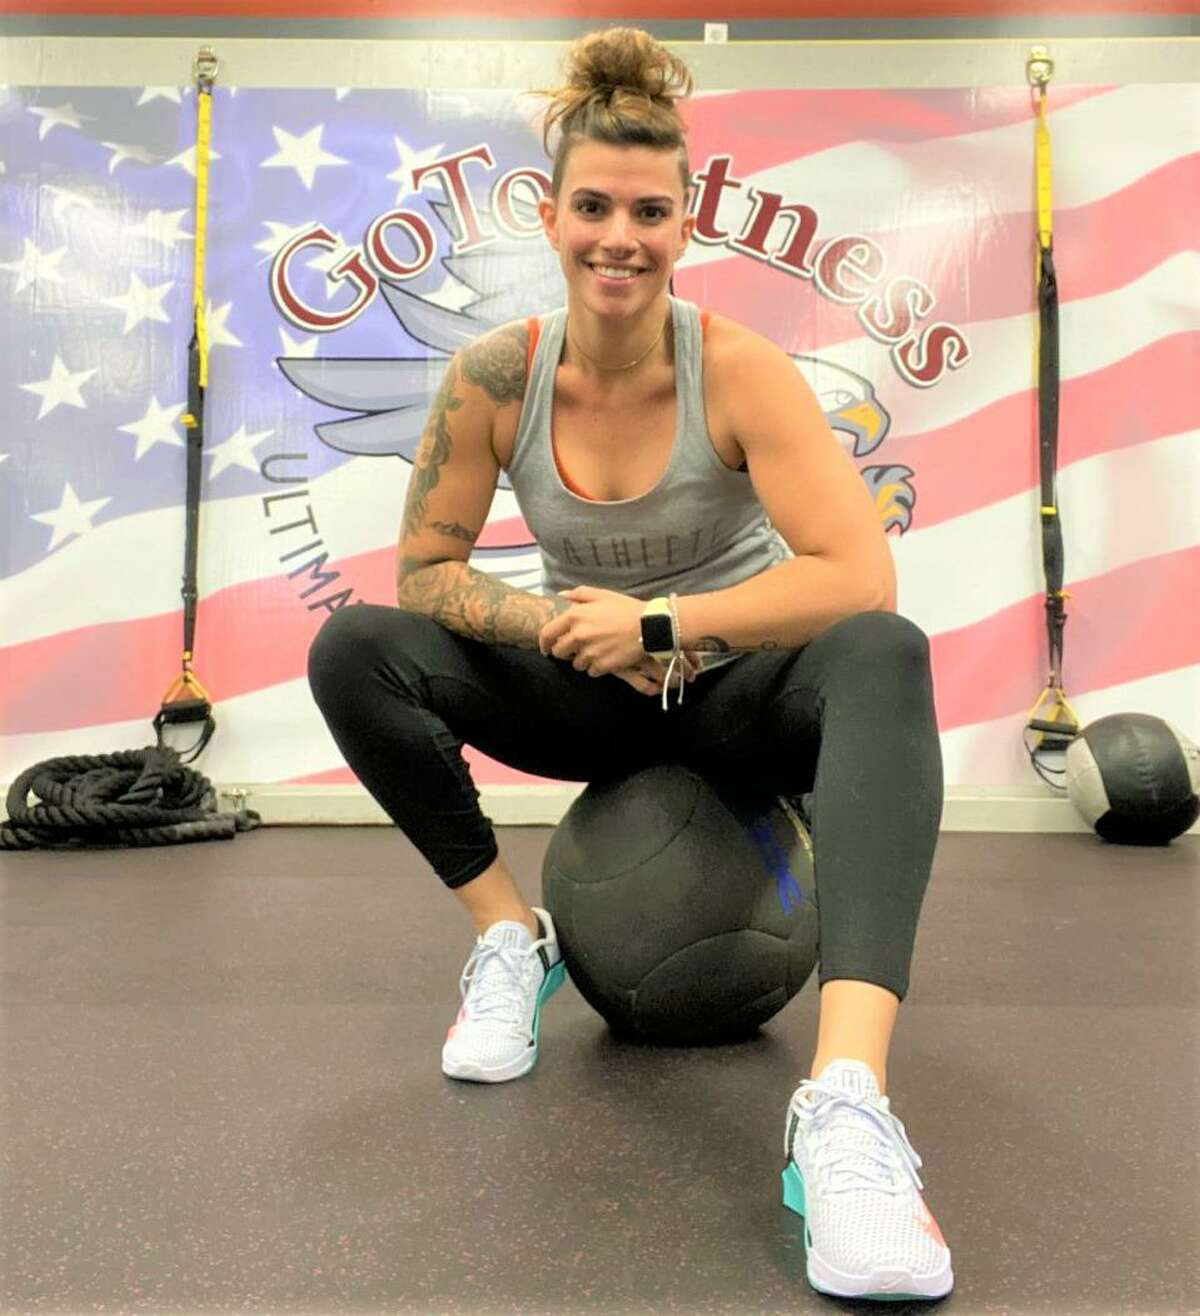 Taylor Arrigoni owns Middletown's GoToFitness Ultimate Training Center at 1385 Newfield St., as well as the new one at 336 Marlborough St. in Portland.